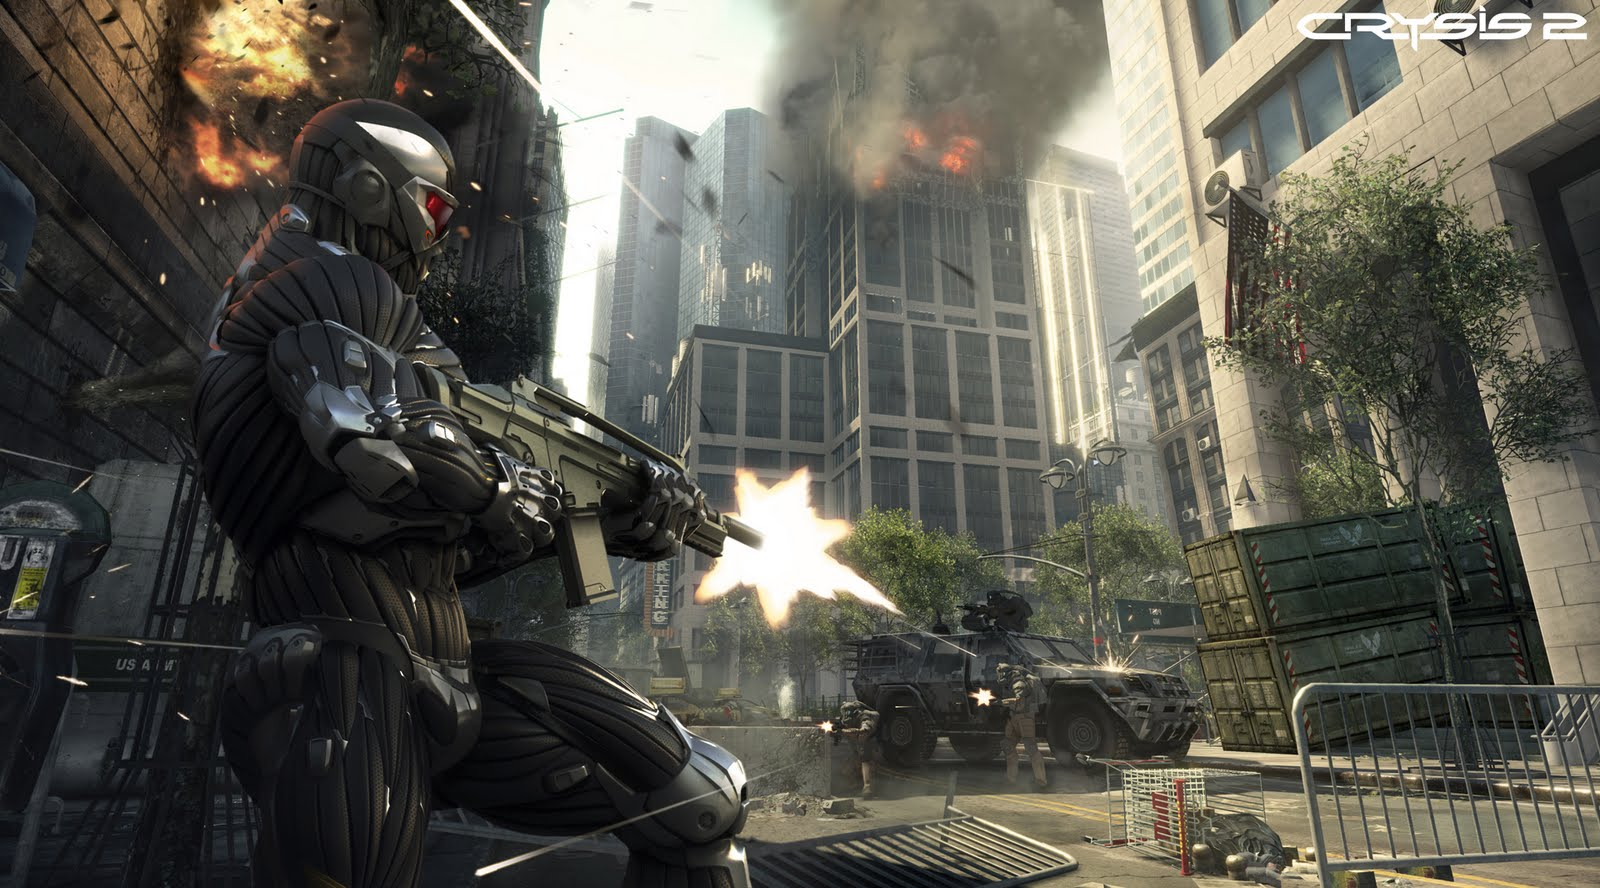 crysis 4 wallpaper hd - photo #10